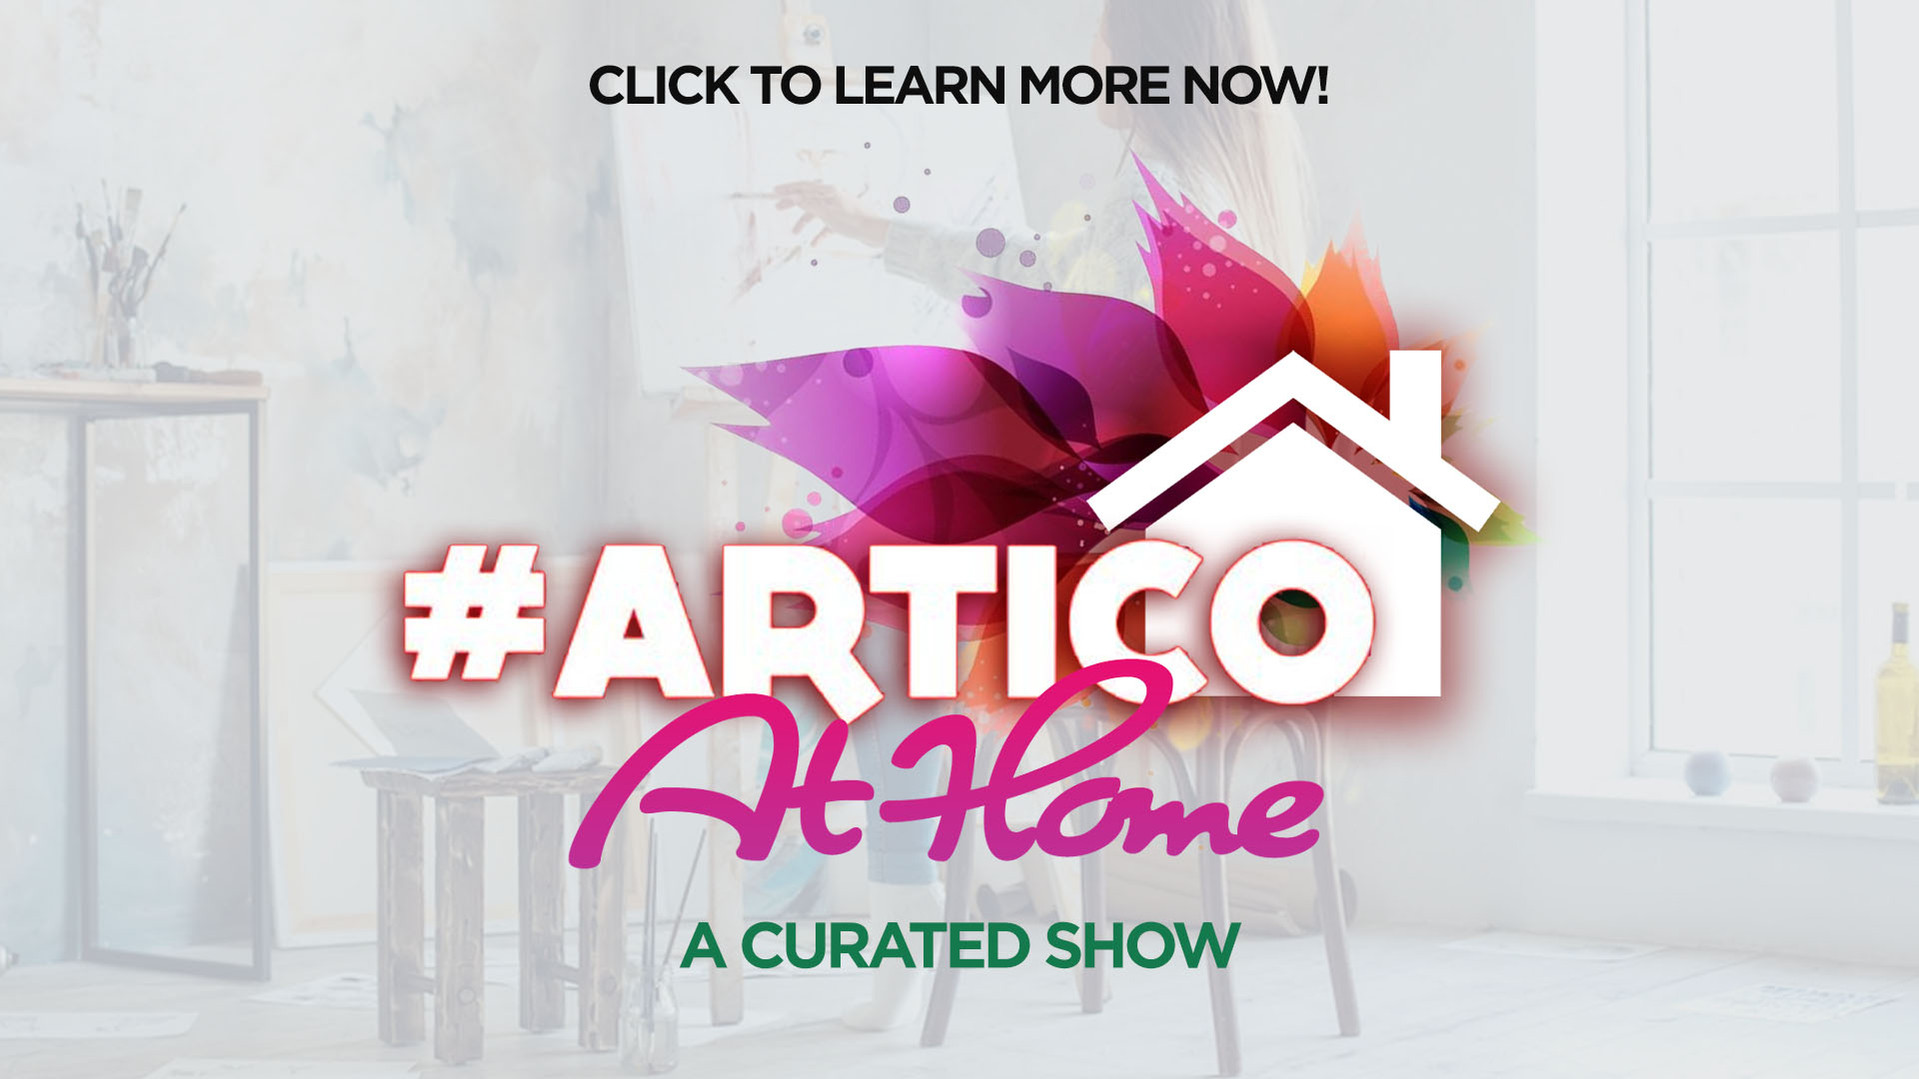 #Artico at Home - A Curated Show